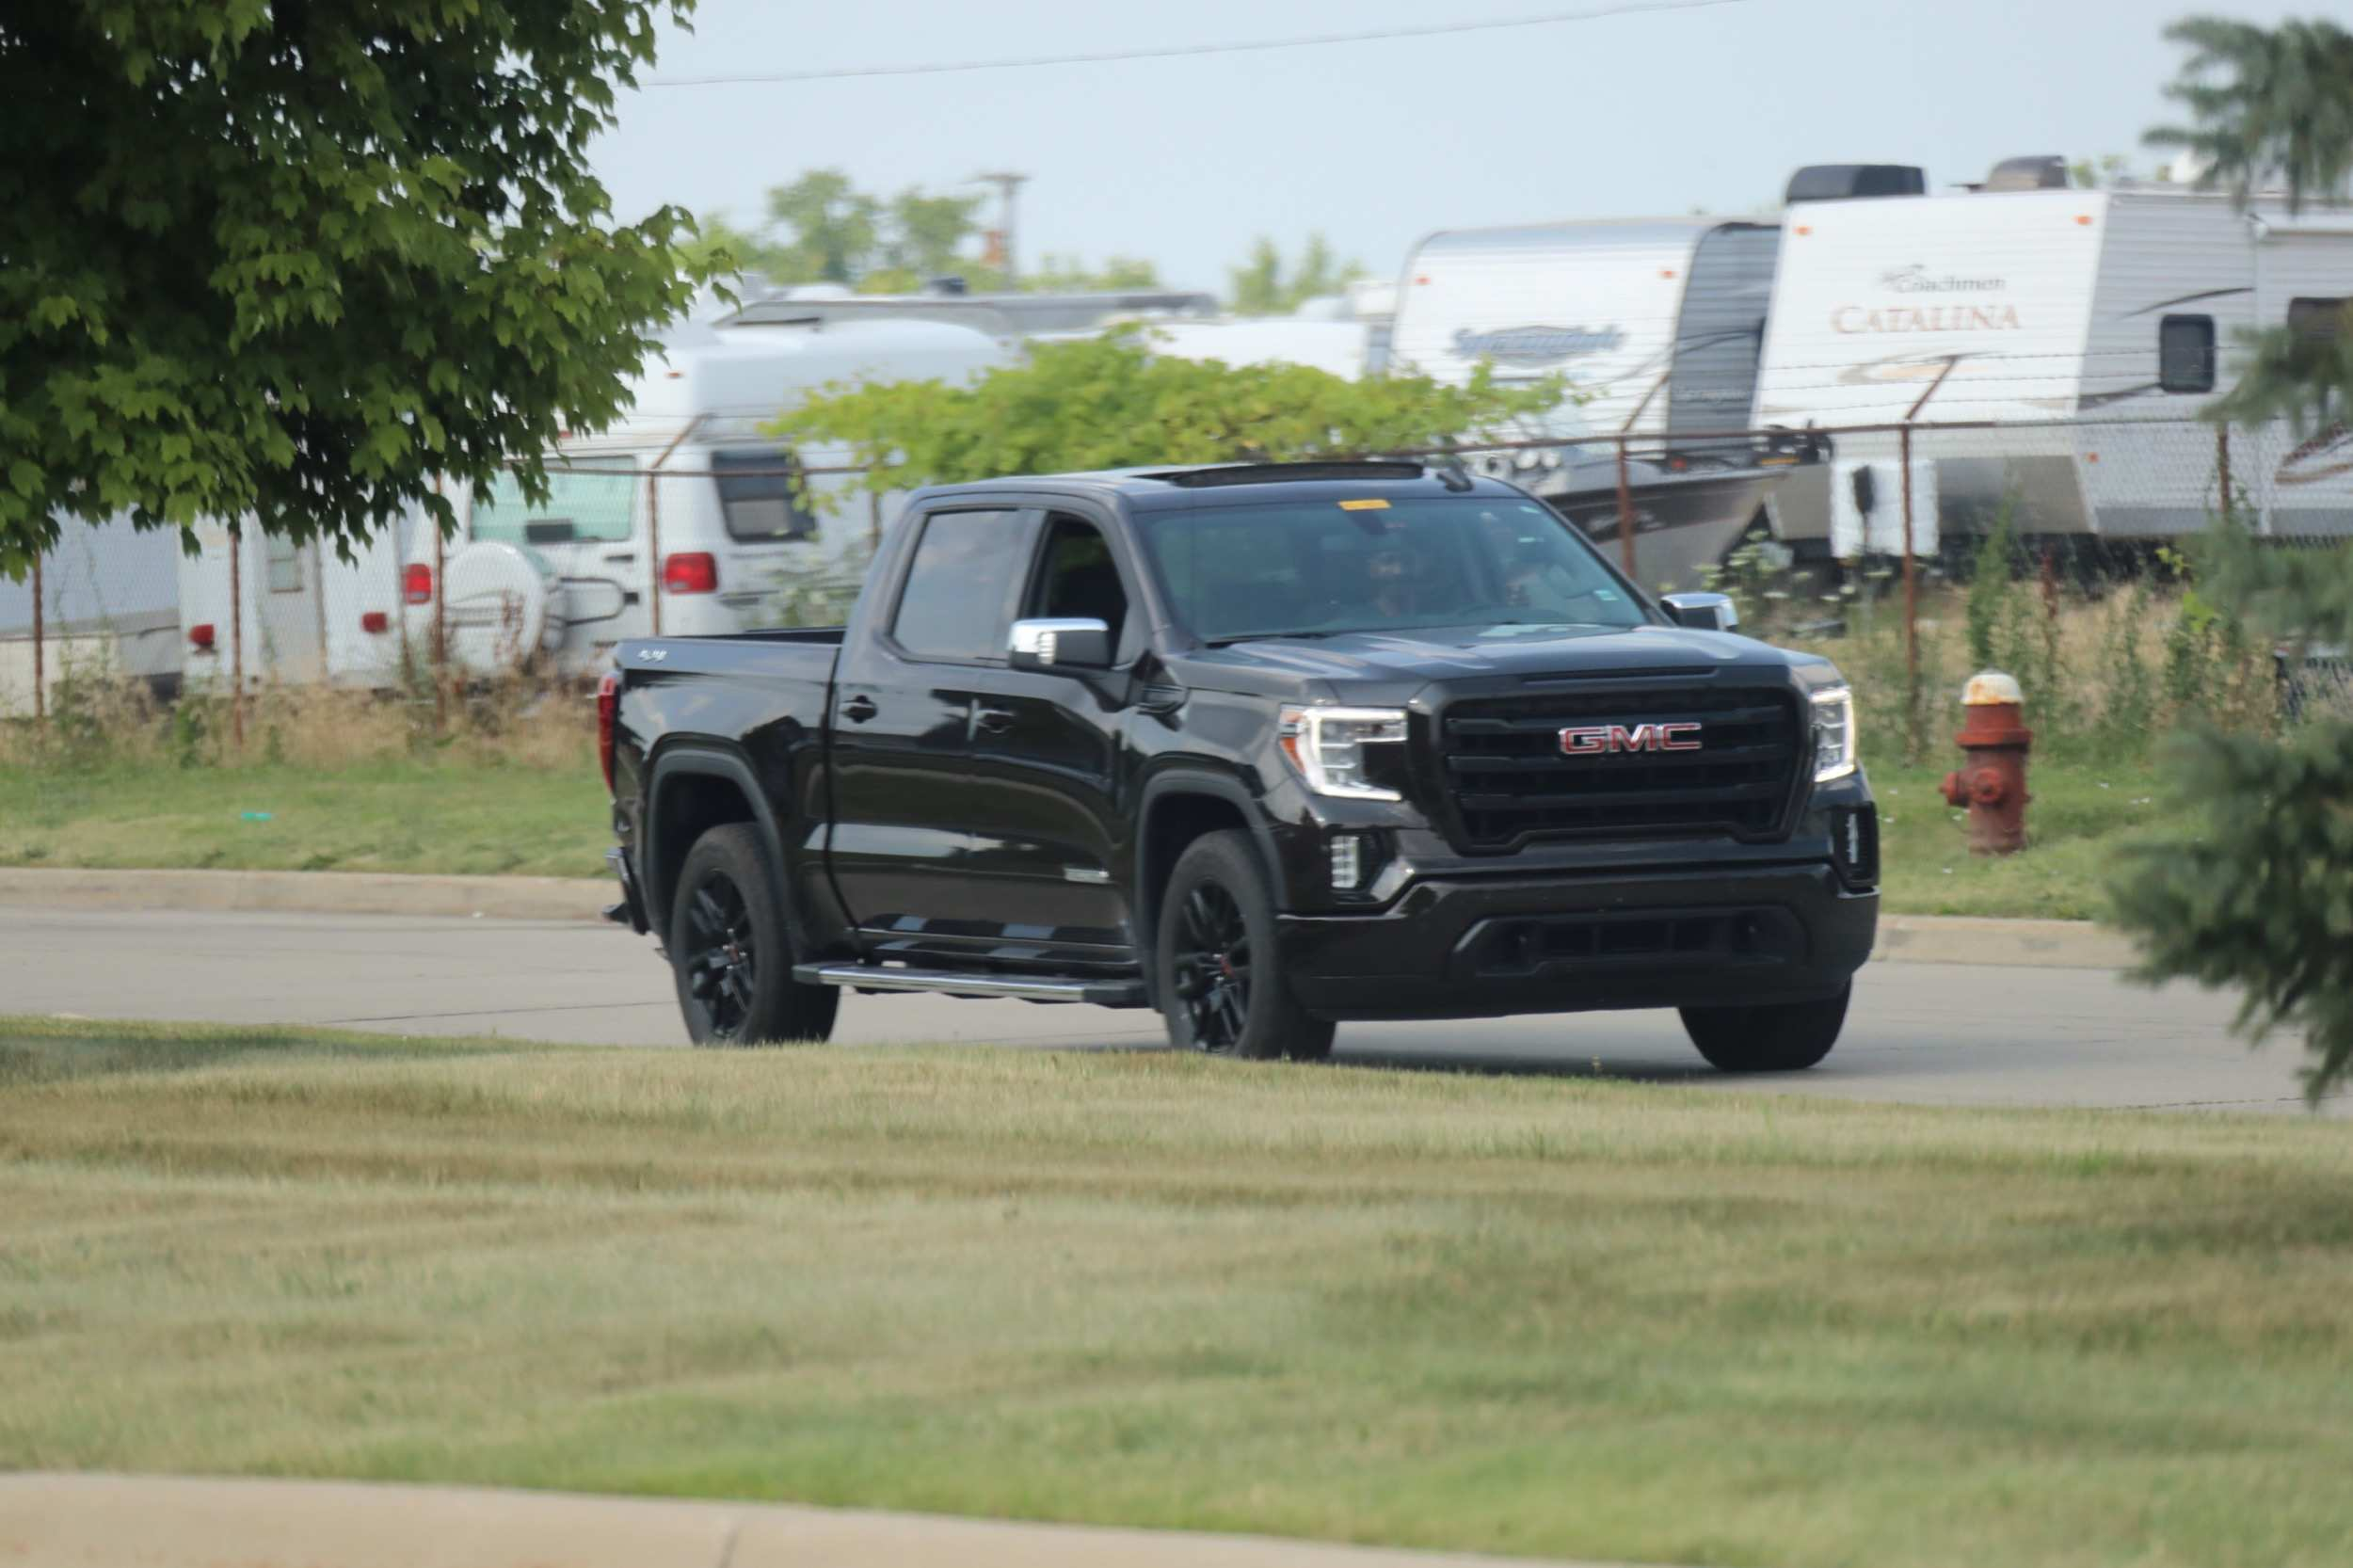 79 Great New 2019 Gmc Pickup Truck Review Specs And Release Date Photos for New 2019 Gmc Pickup Truck Review Specs And Release Date